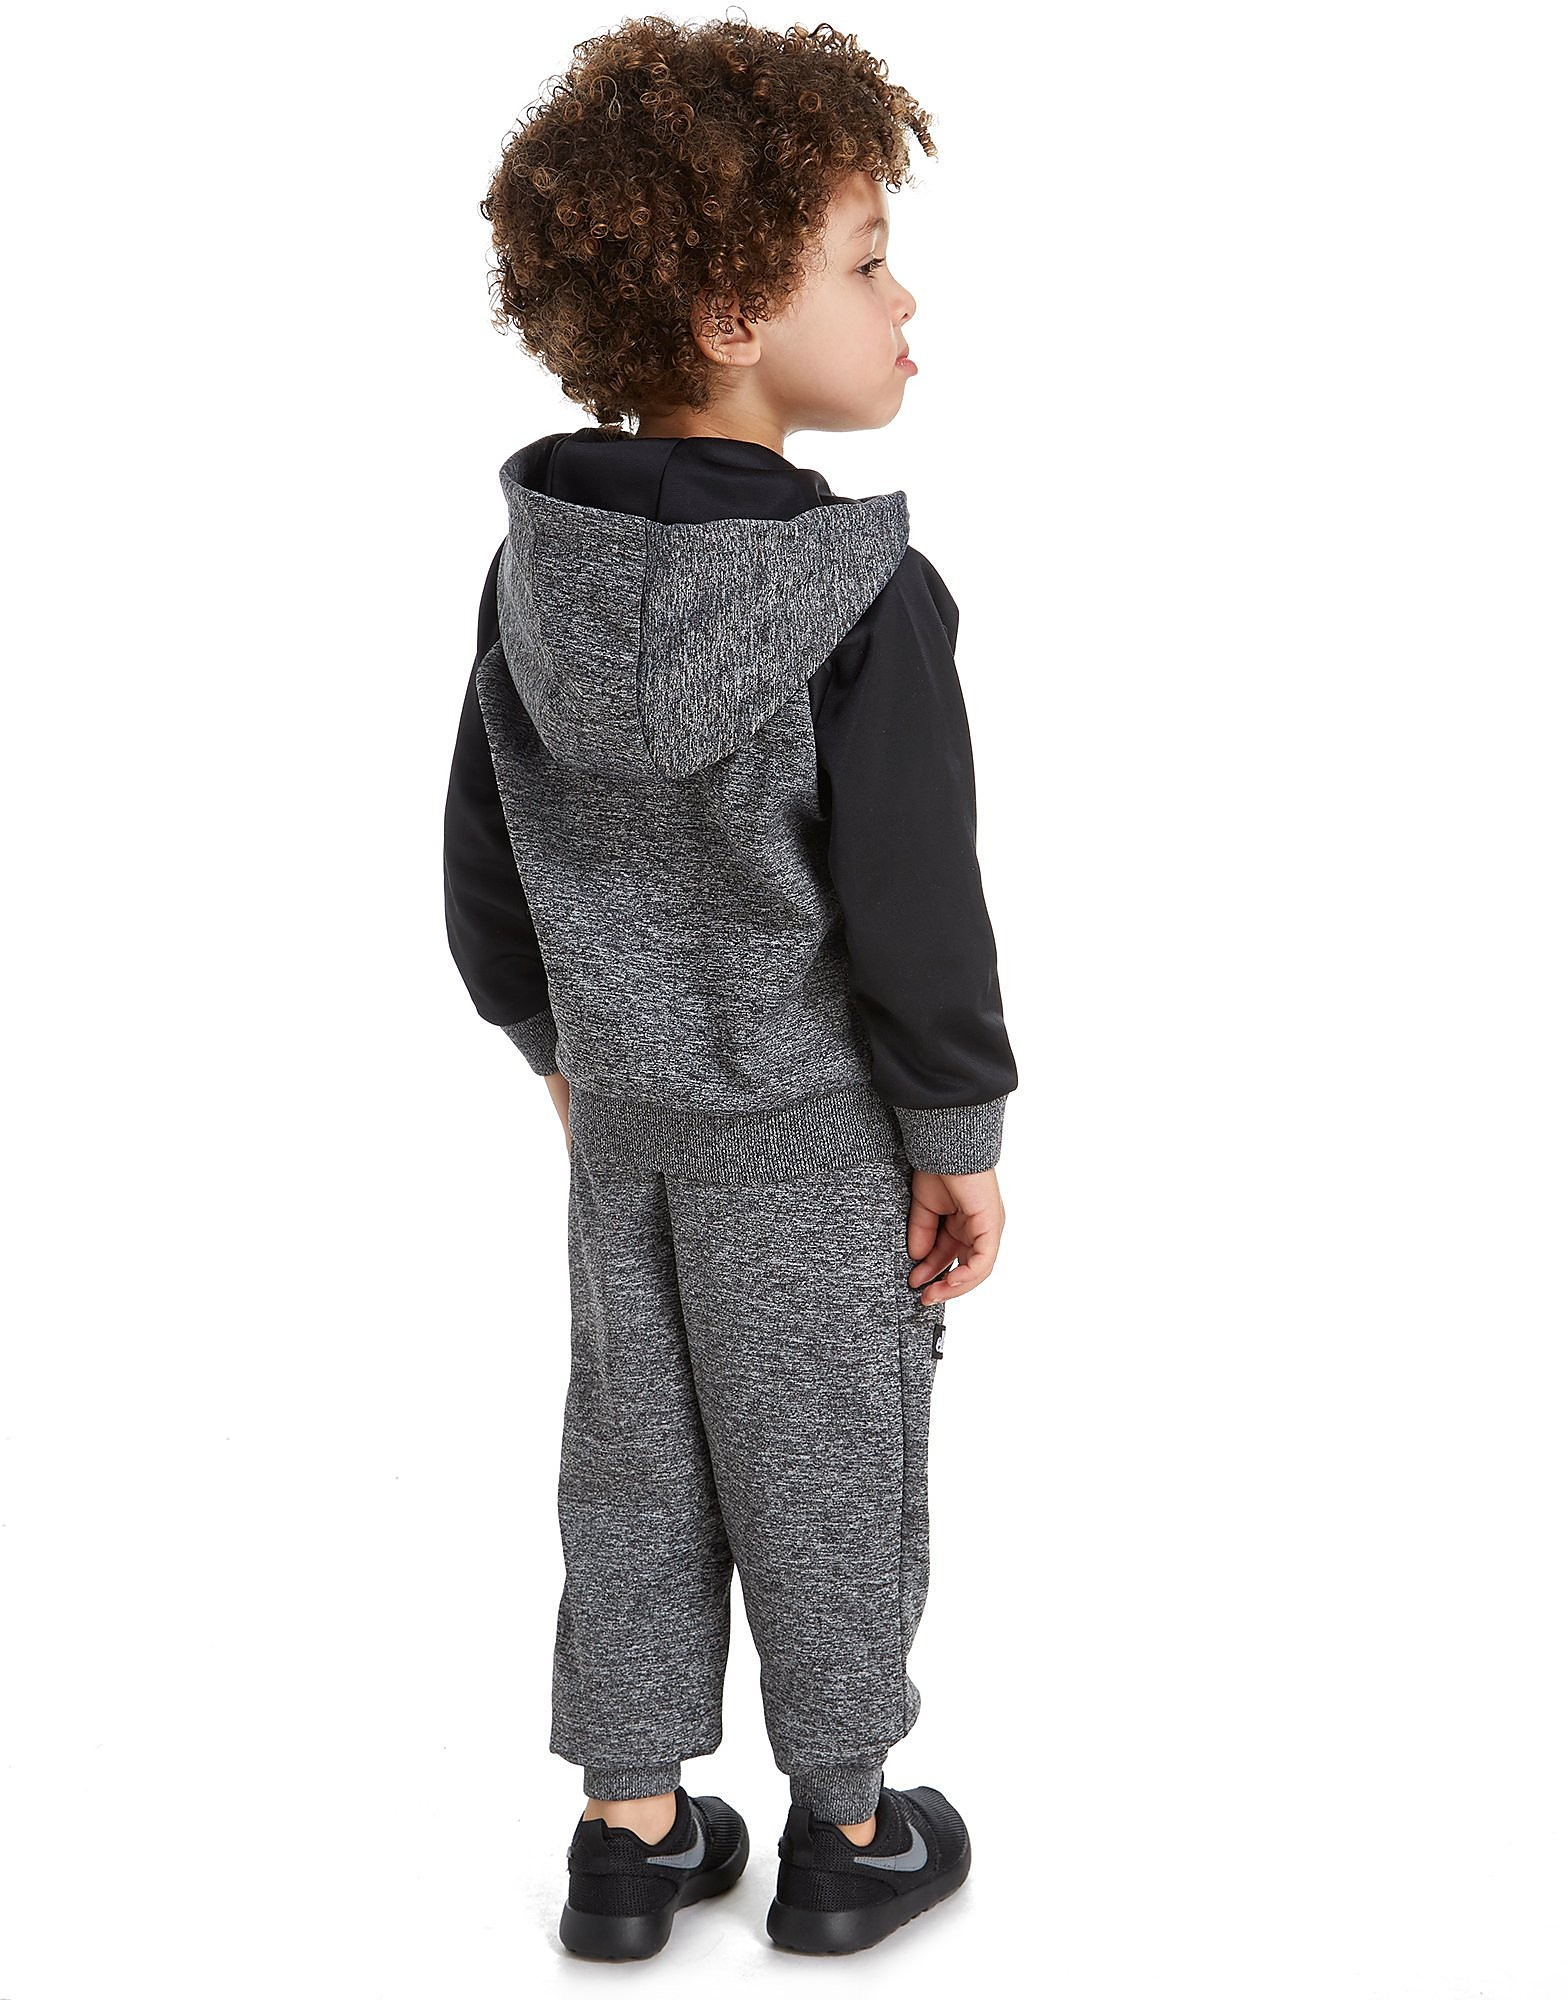 Ellesse Lupio Full Zip Suit Children